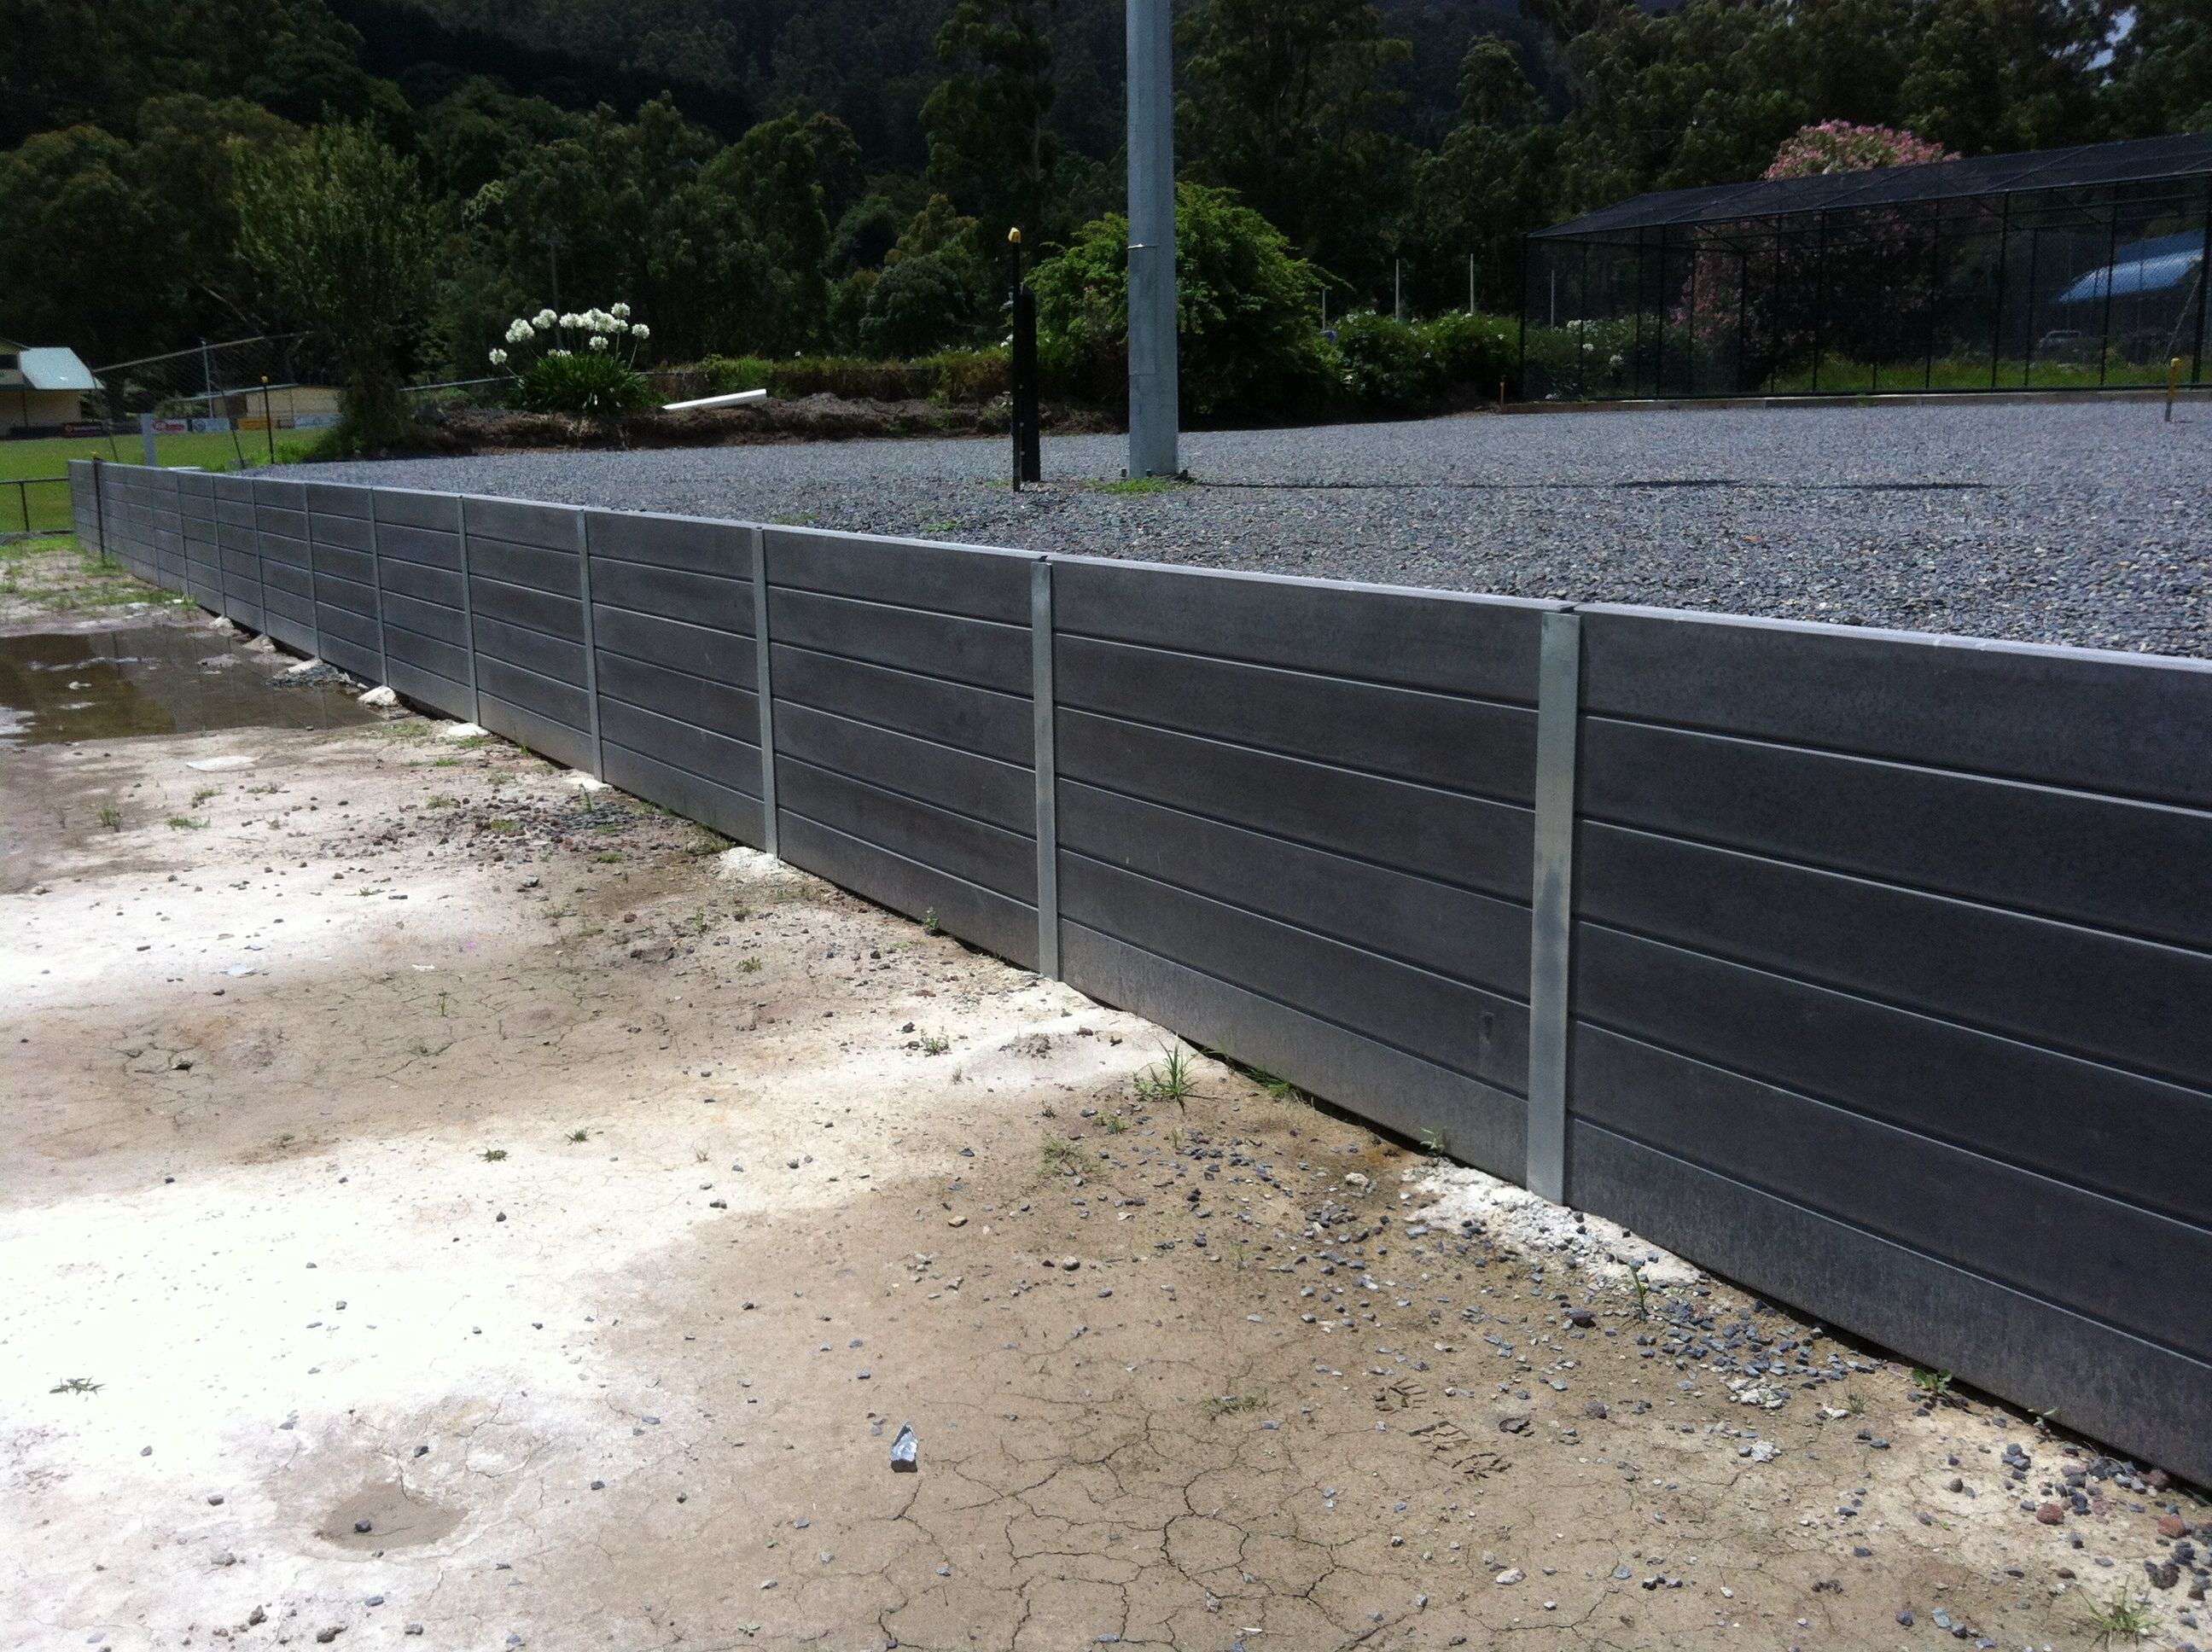 Steel gates adelaide sunlander outdoor products 600x450 jpeg - Steel Gates Adelaide Sunlander Outdoor Products 600x450 Jpeg Image Result For H Bar Sleeper Retaining Download